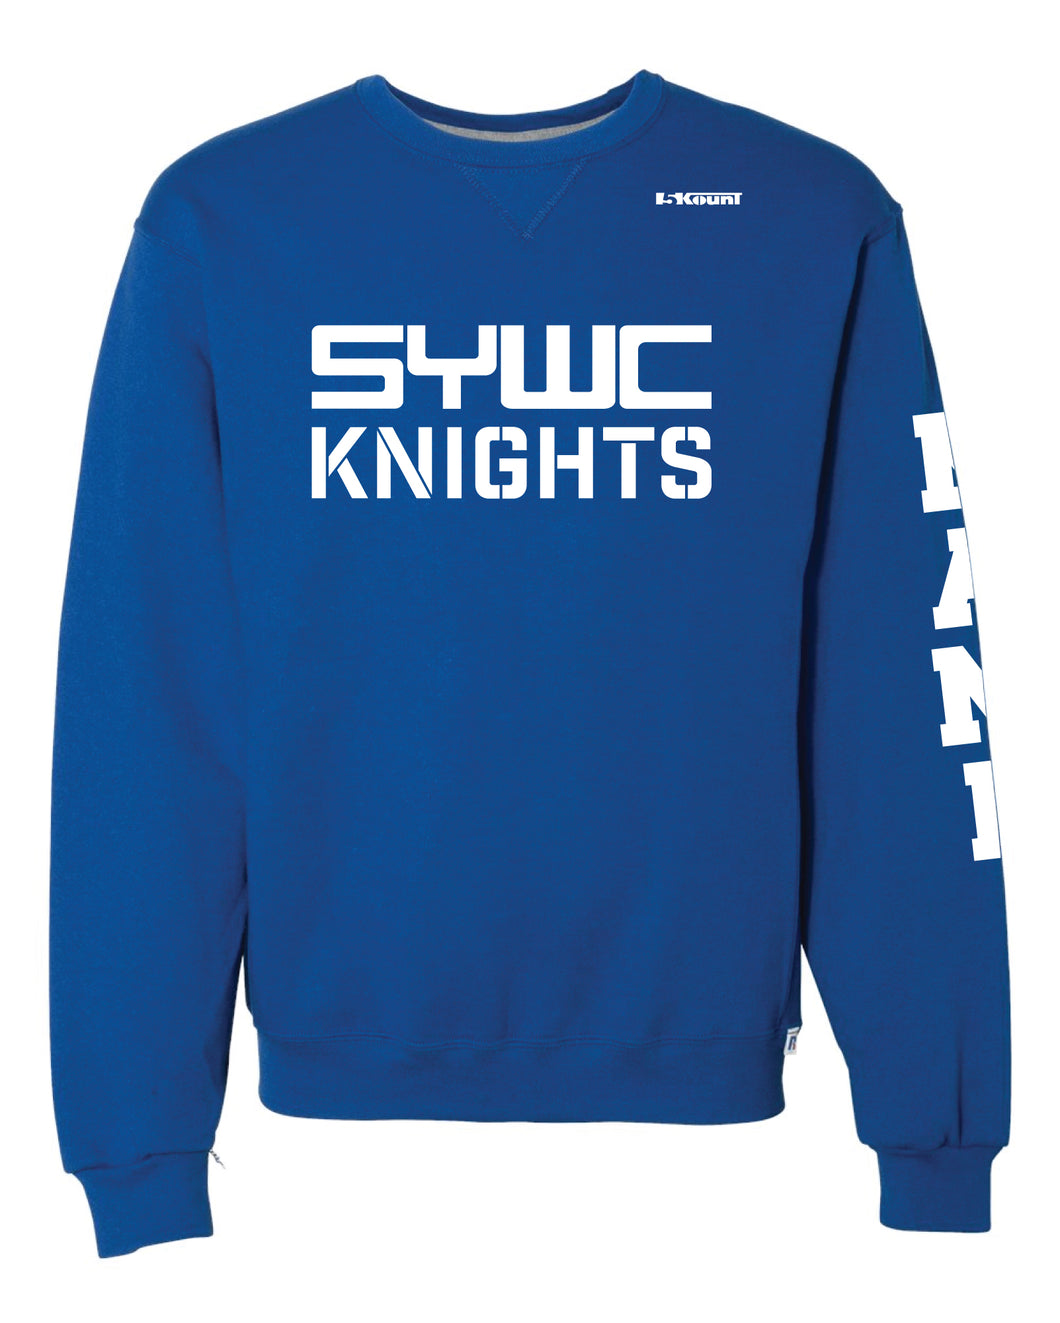 SYWC Russell Athletic Cotton Crewneck Sweatshirt - Royal